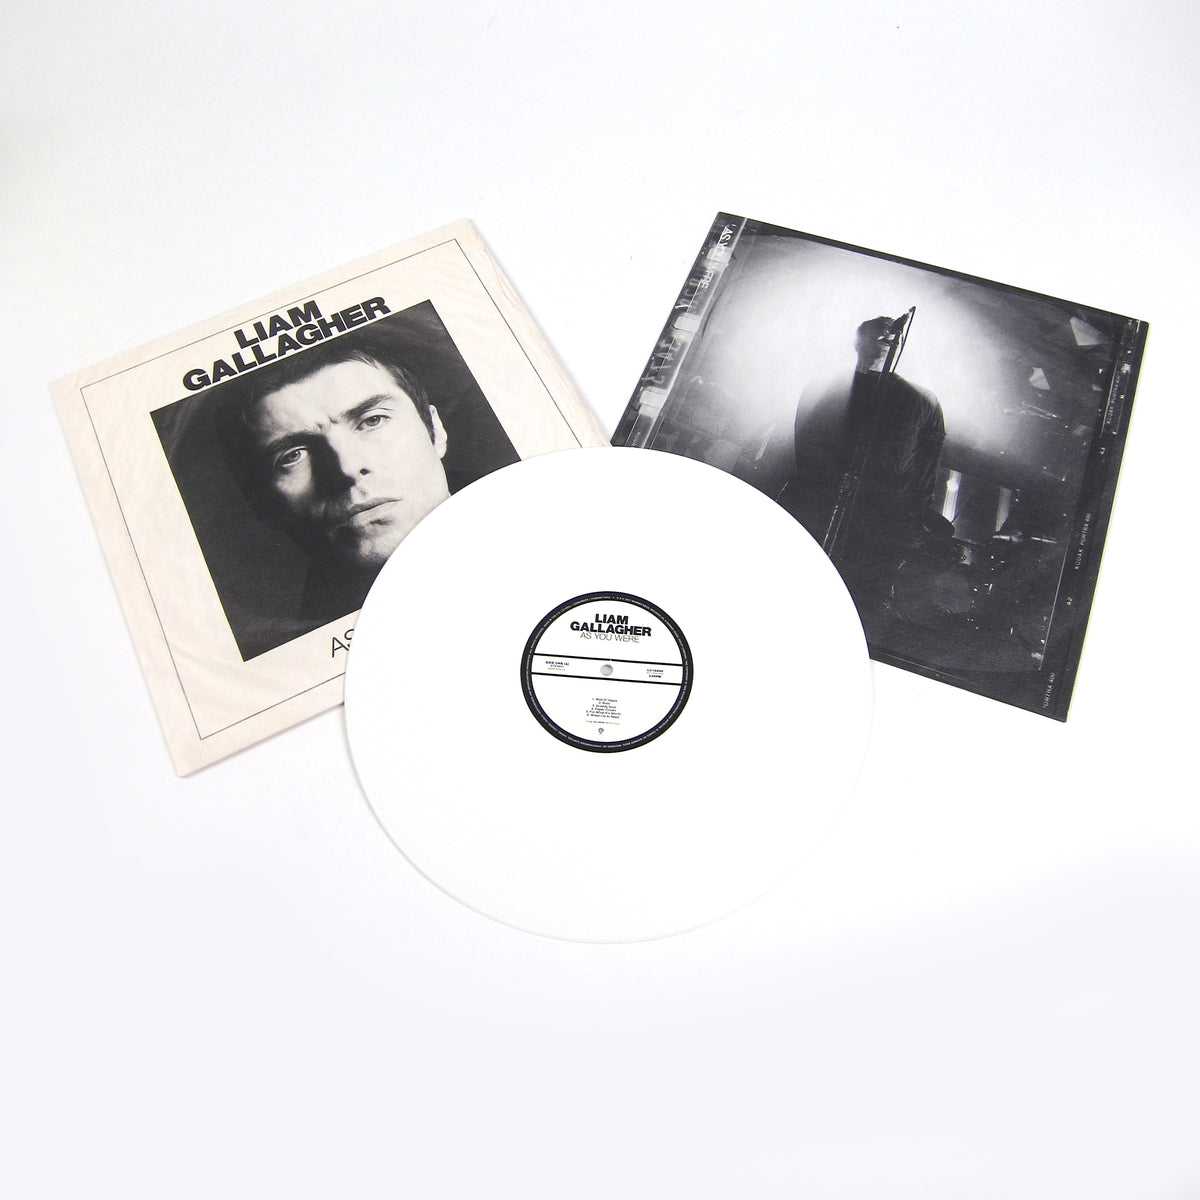 Liam Gallagher: As You Were (Indie Exclusive 180g, Colored Vinyl) Vinyl LP